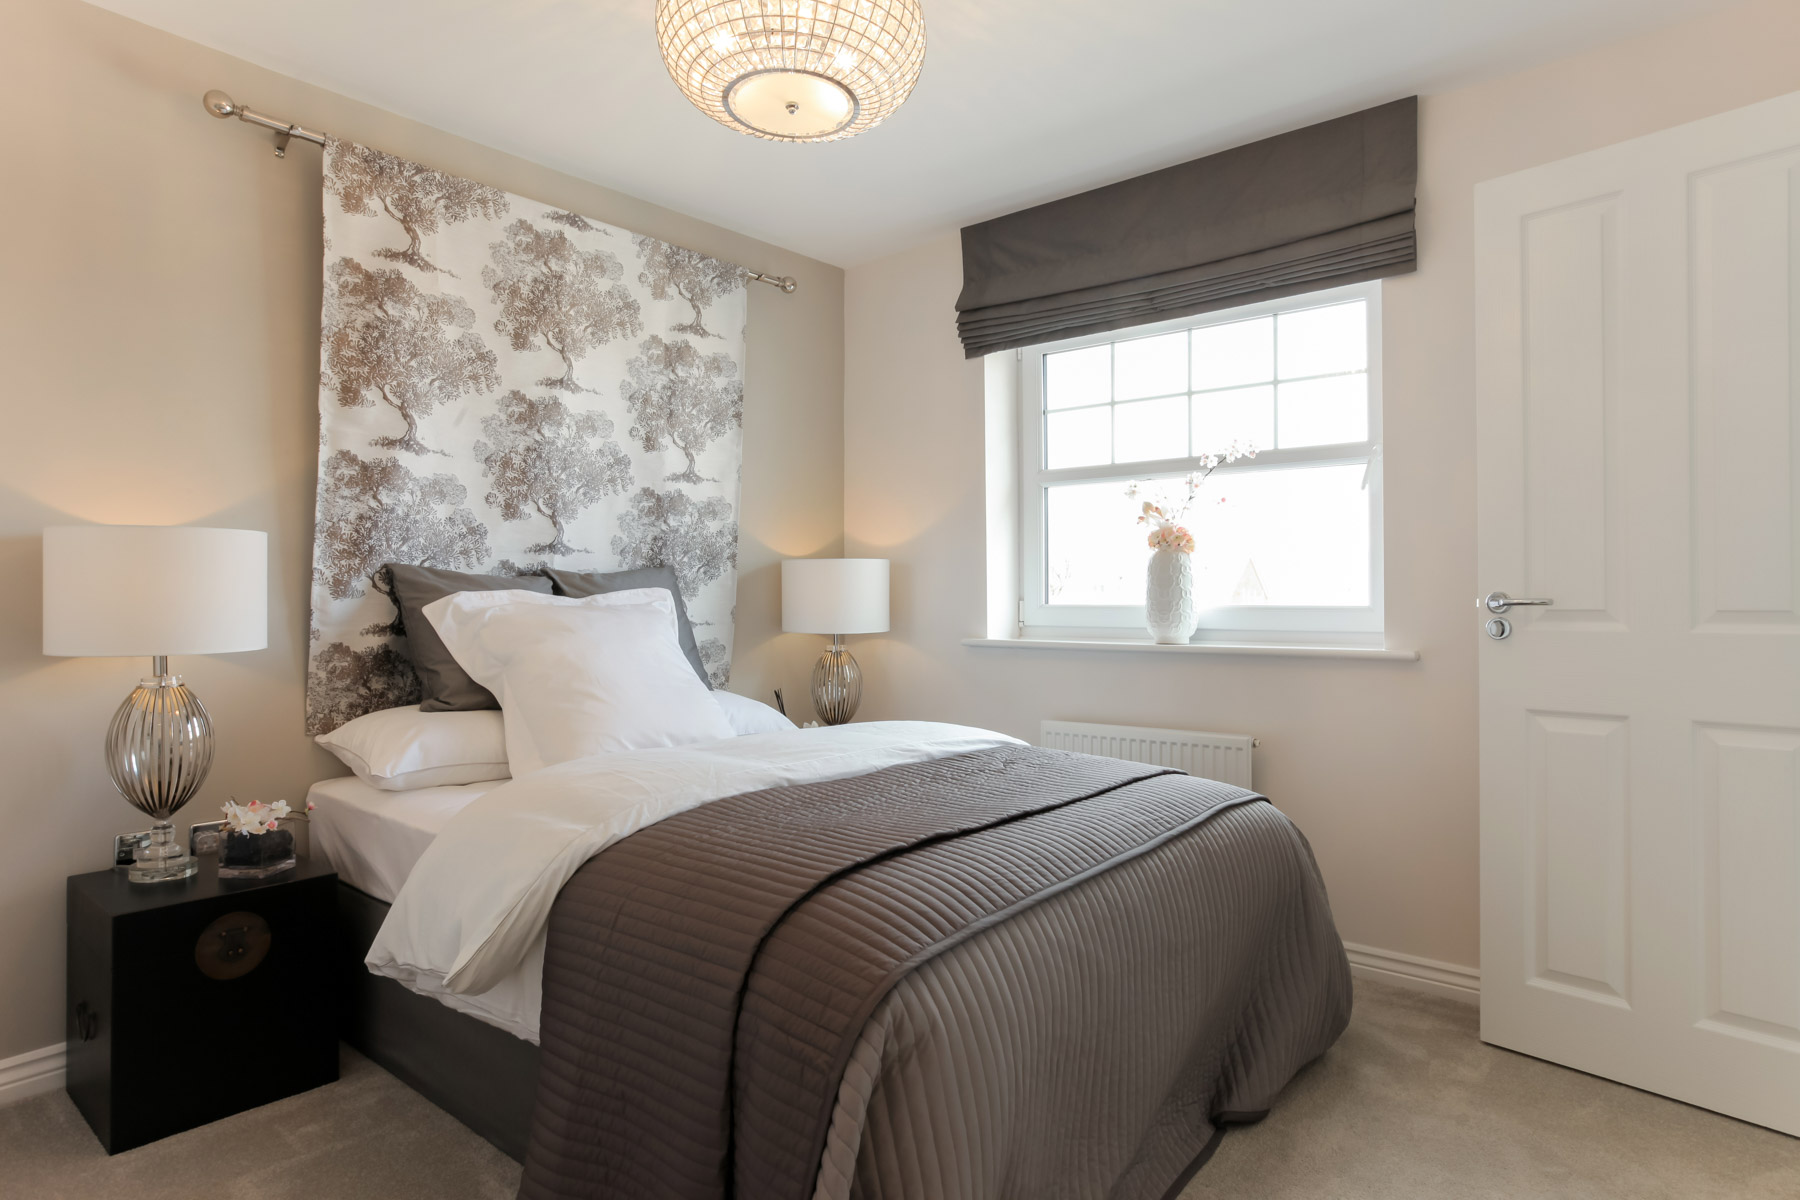 TW Exeter - Cranbrook - Farndale example bedroom 2